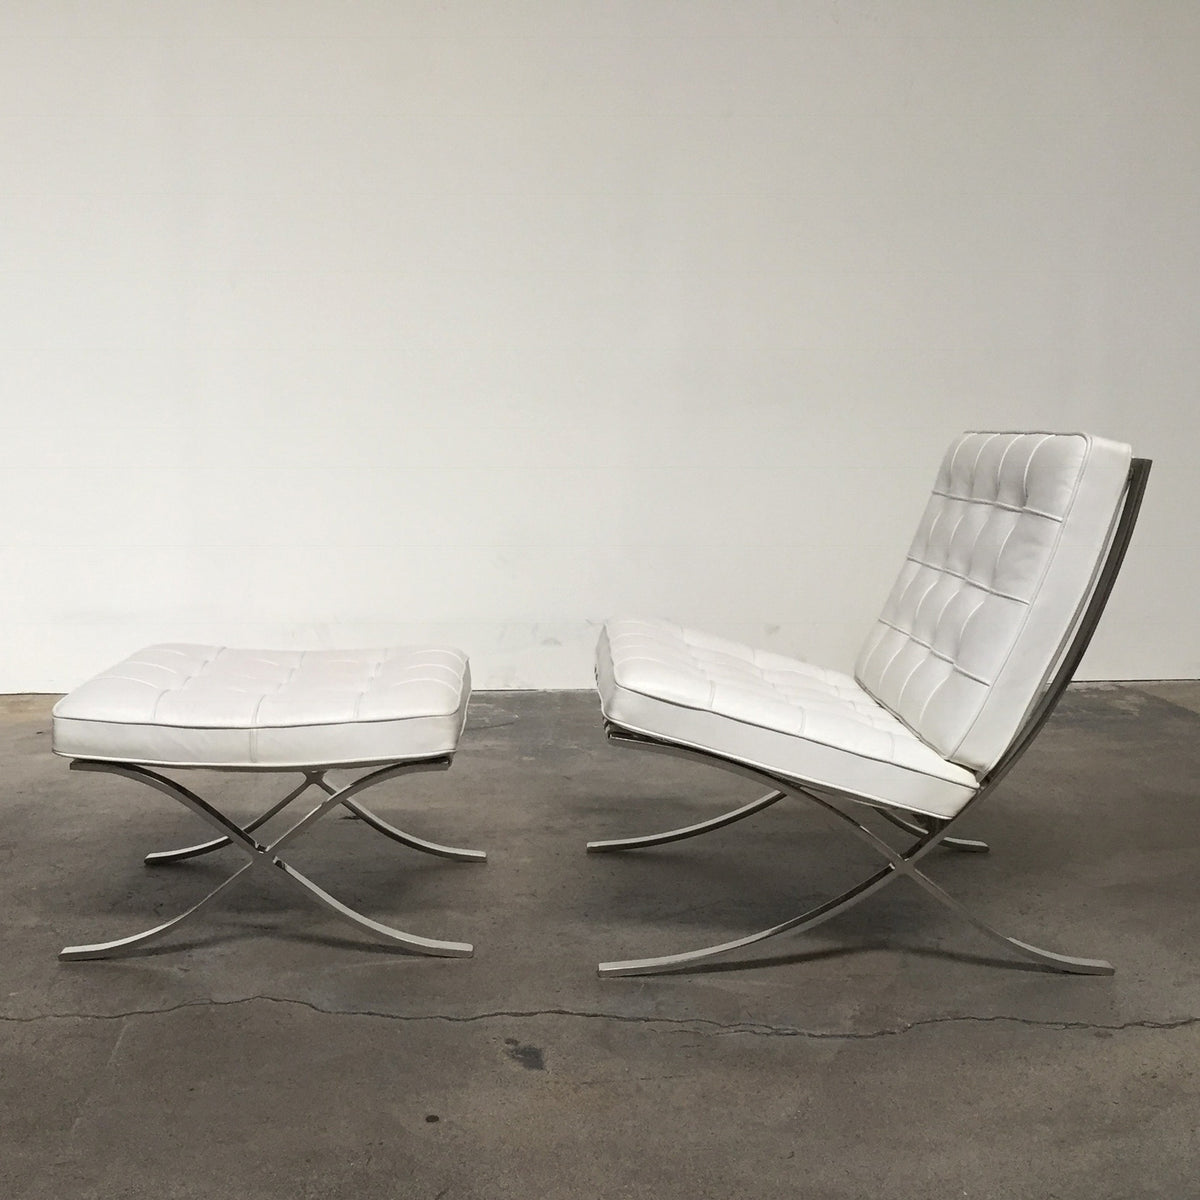 Tremendous White Barcelona Chair Ottoman Caraccident5 Cool Chair Designs And Ideas Caraccident5Info